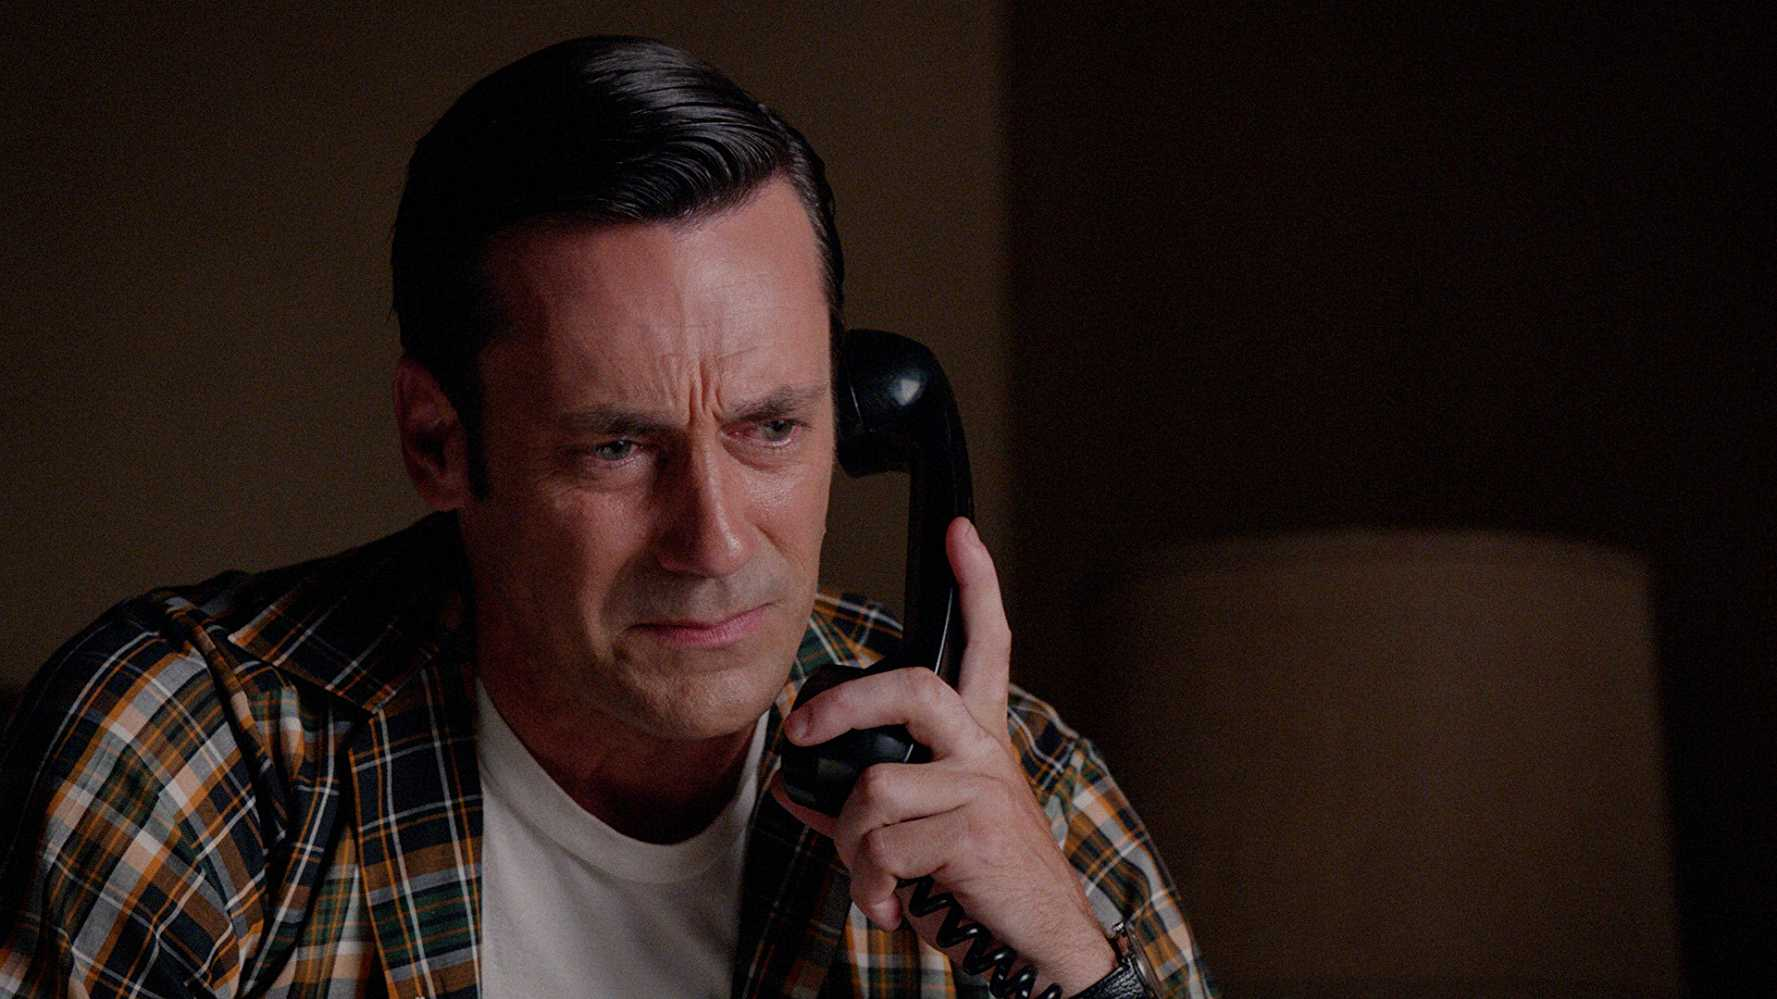 'Mad Men' was one of the shows of the decade (Source: IMDb)